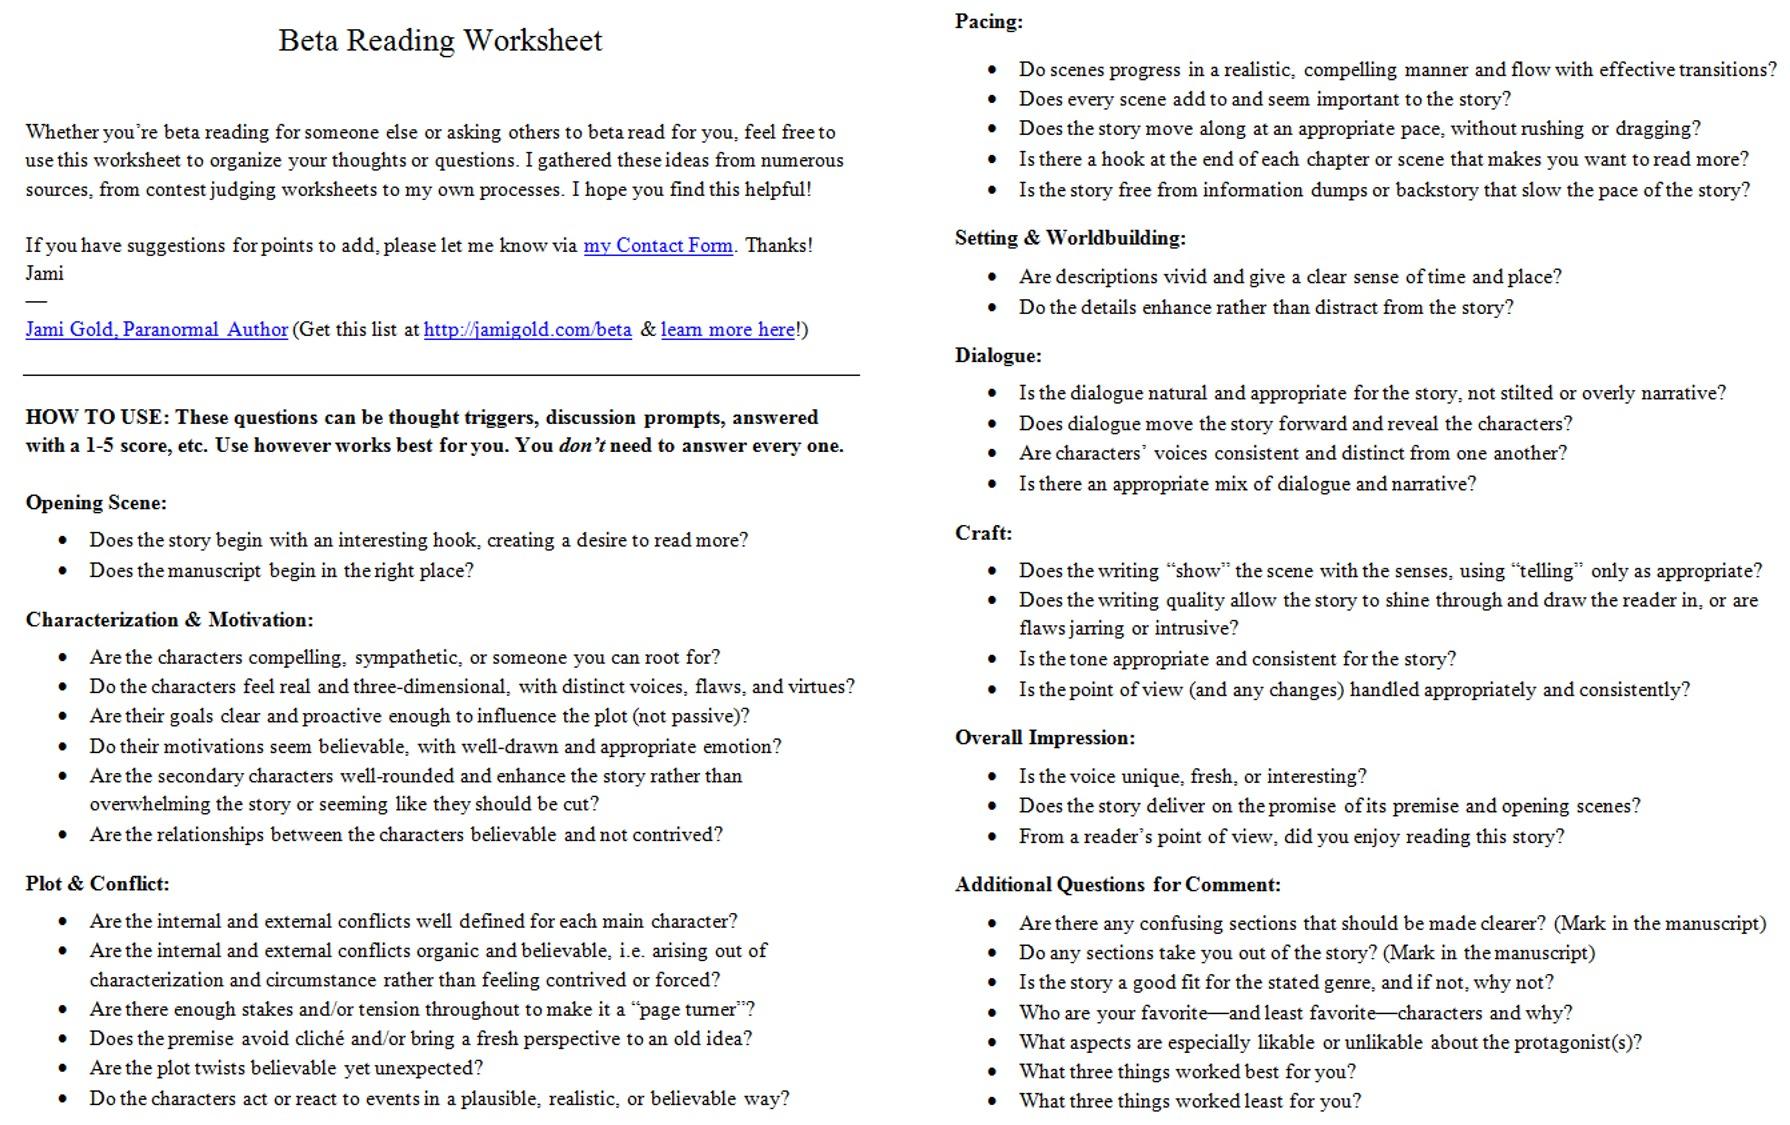 Proatmealus  Picturesque Worksheets For Writers  Jami Gold Paranormal Author With Marvelous Screen Shot Of The Twopage Beta Reading Worksheet With Agreeable Create Your Own Maths Worksheets Also Worksheet For Fraction In Addition Nutrition Printable Worksheets And Cause And Effect Worksheets For Kids As Well As Spanish And English Worksheets Additionally Multiplication By   And  Worksheets From Jamigoldcom With Proatmealus  Marvelous Worksheets For Writers  Jami Gold Paranormal Author With Agreeable Screen Shot Of The Twopage Beta Reading Worksheet And Picturesque Create Your Own Maths Worksheets Also Worksheet For Fraction In Addition Nutrition Printable Worksheets From Jamigoldcom